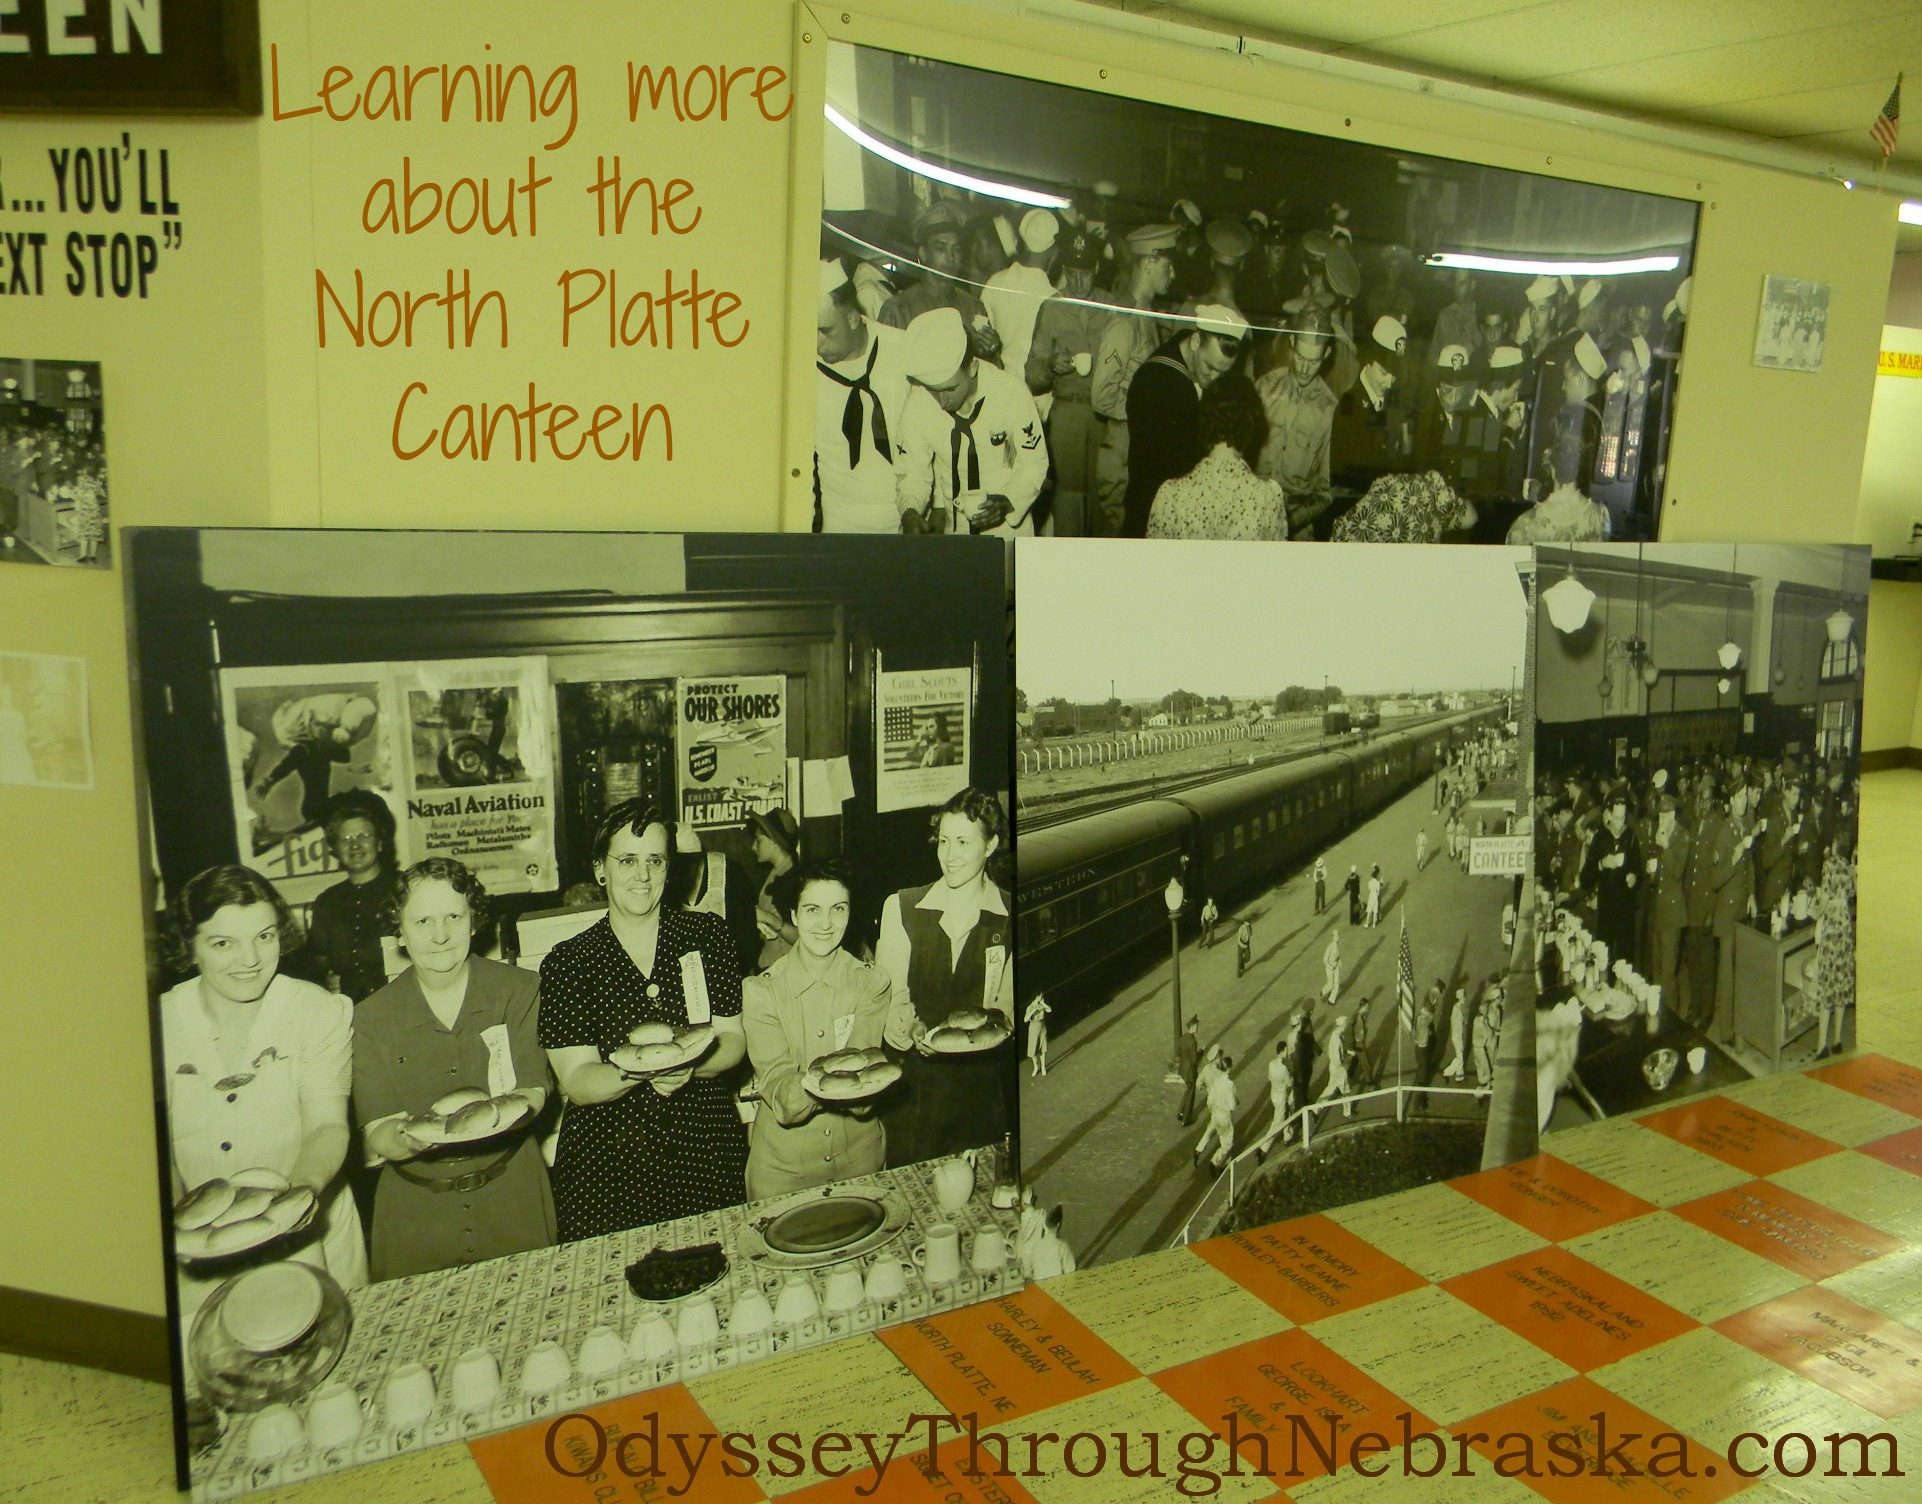 North Platte Canteen resources